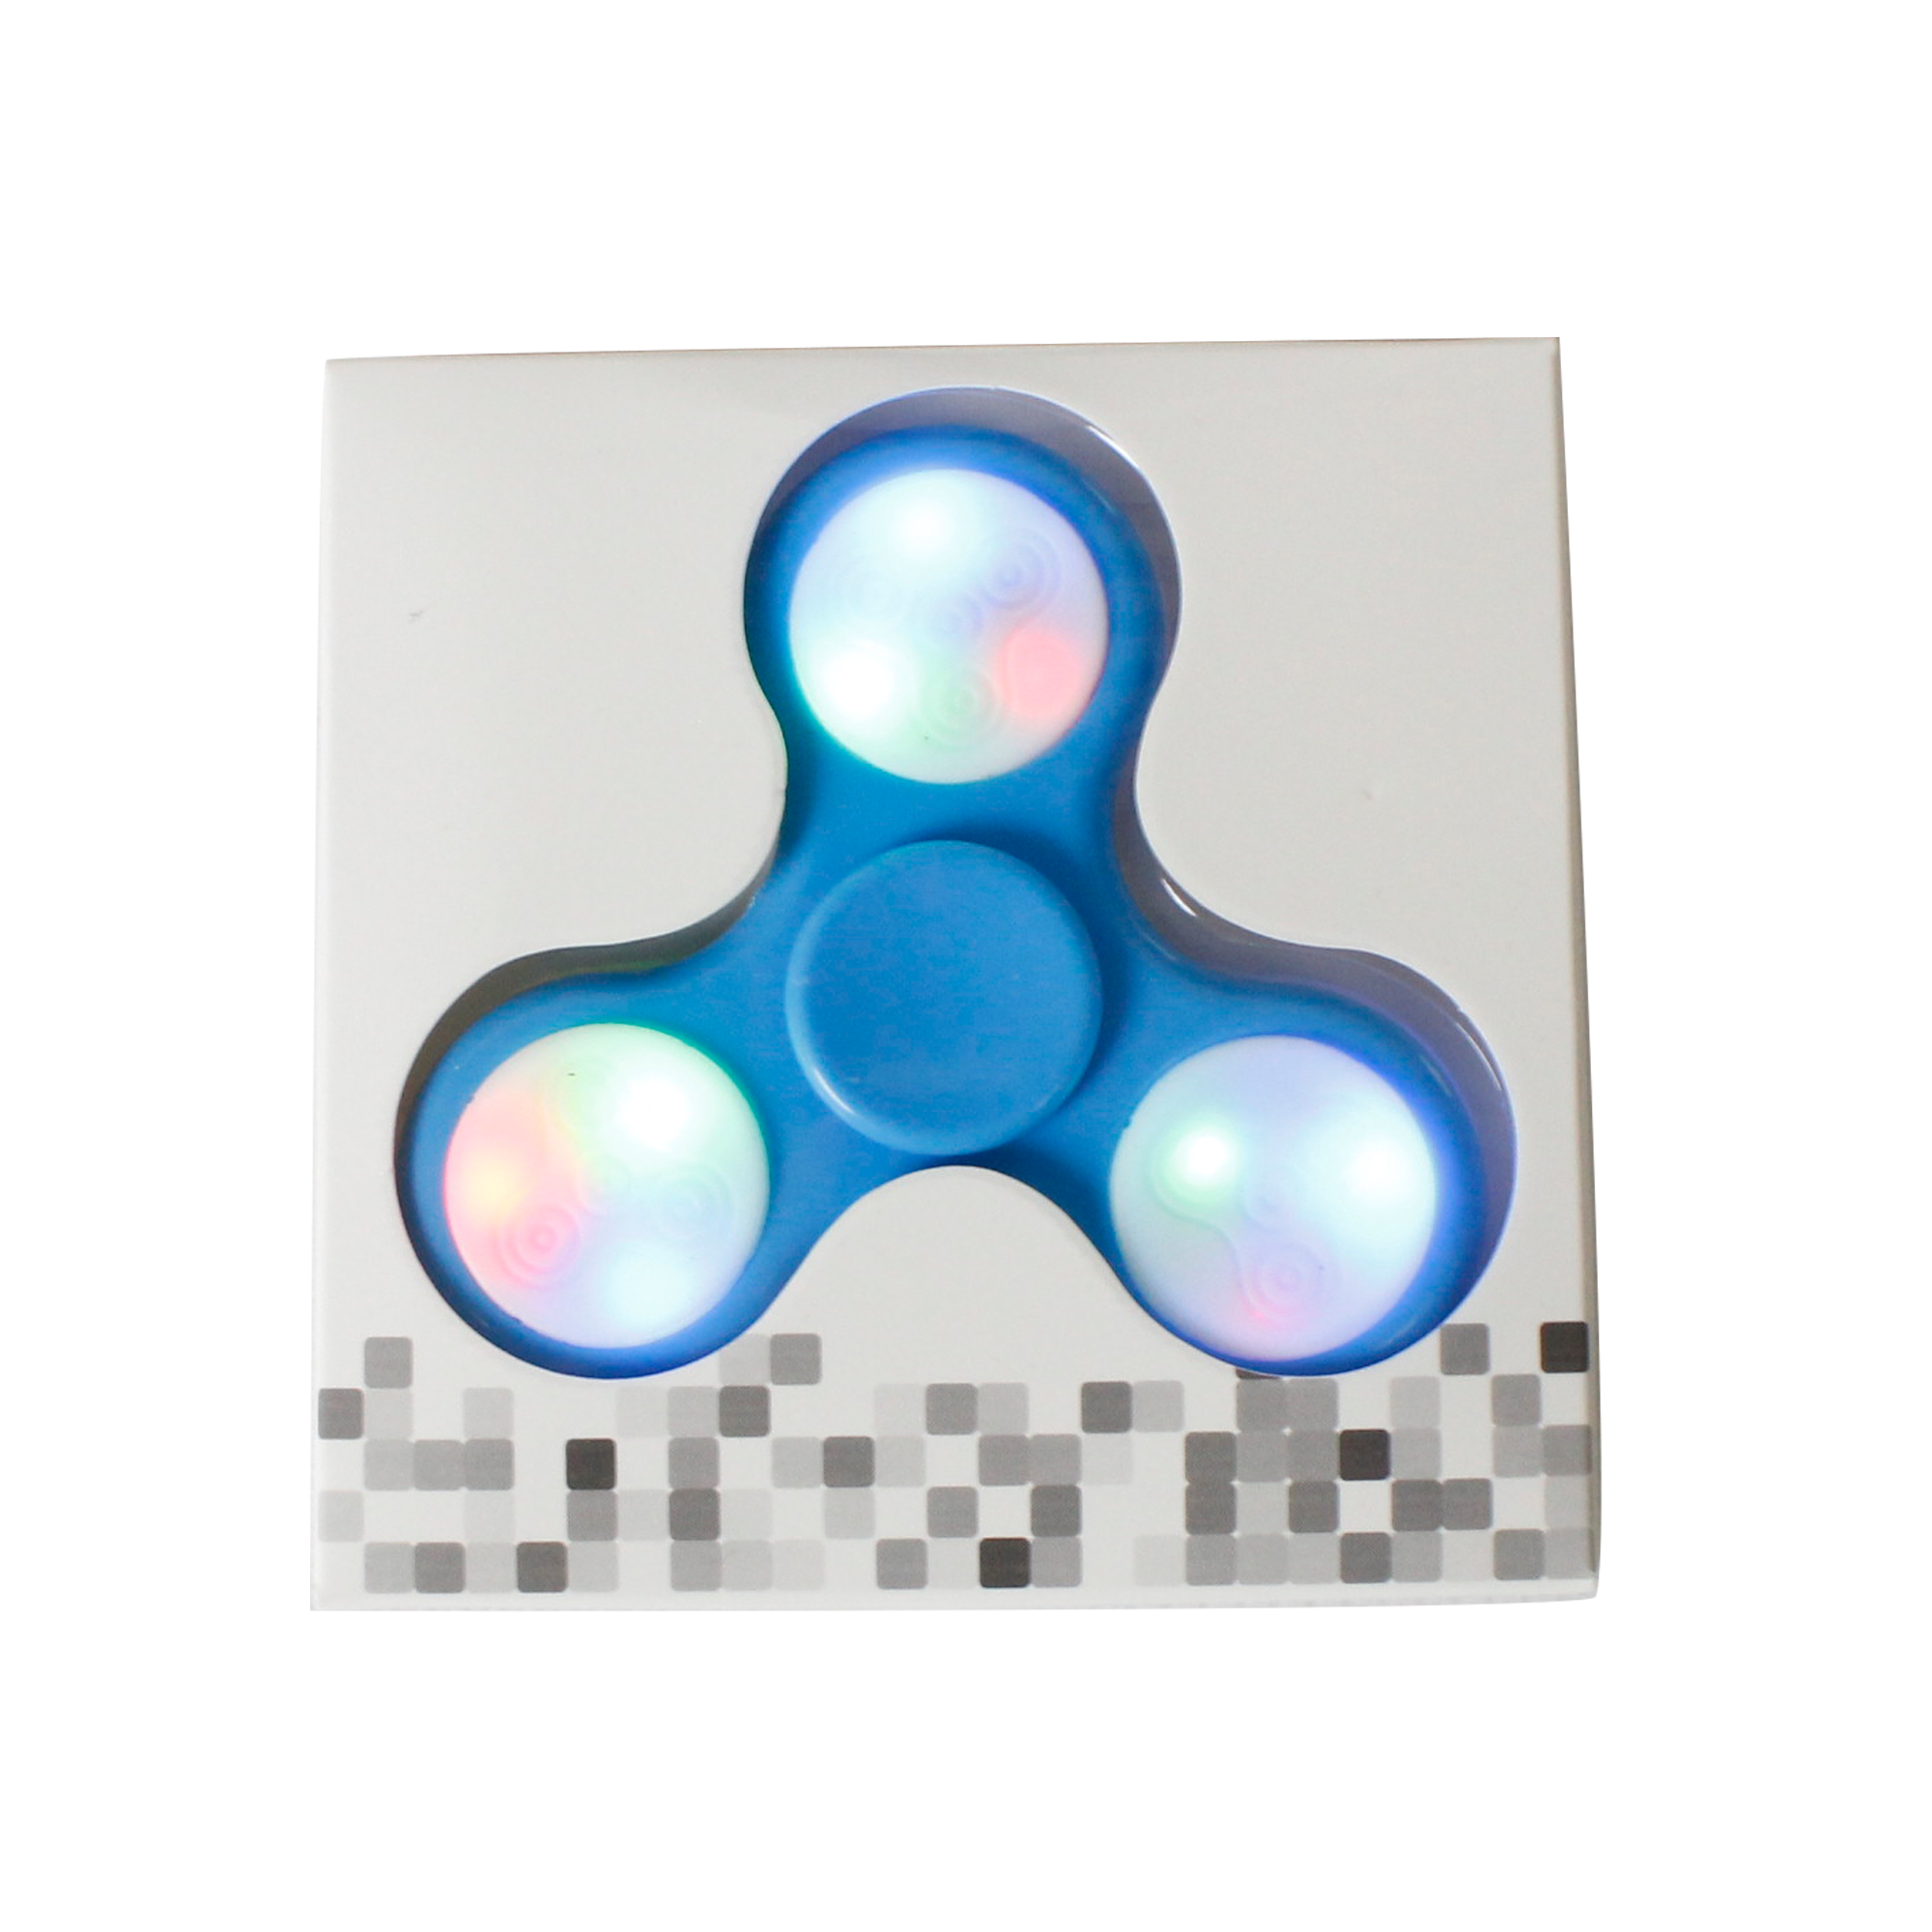 LED Push Button Finger Spinner with 9 LEDs - Blue